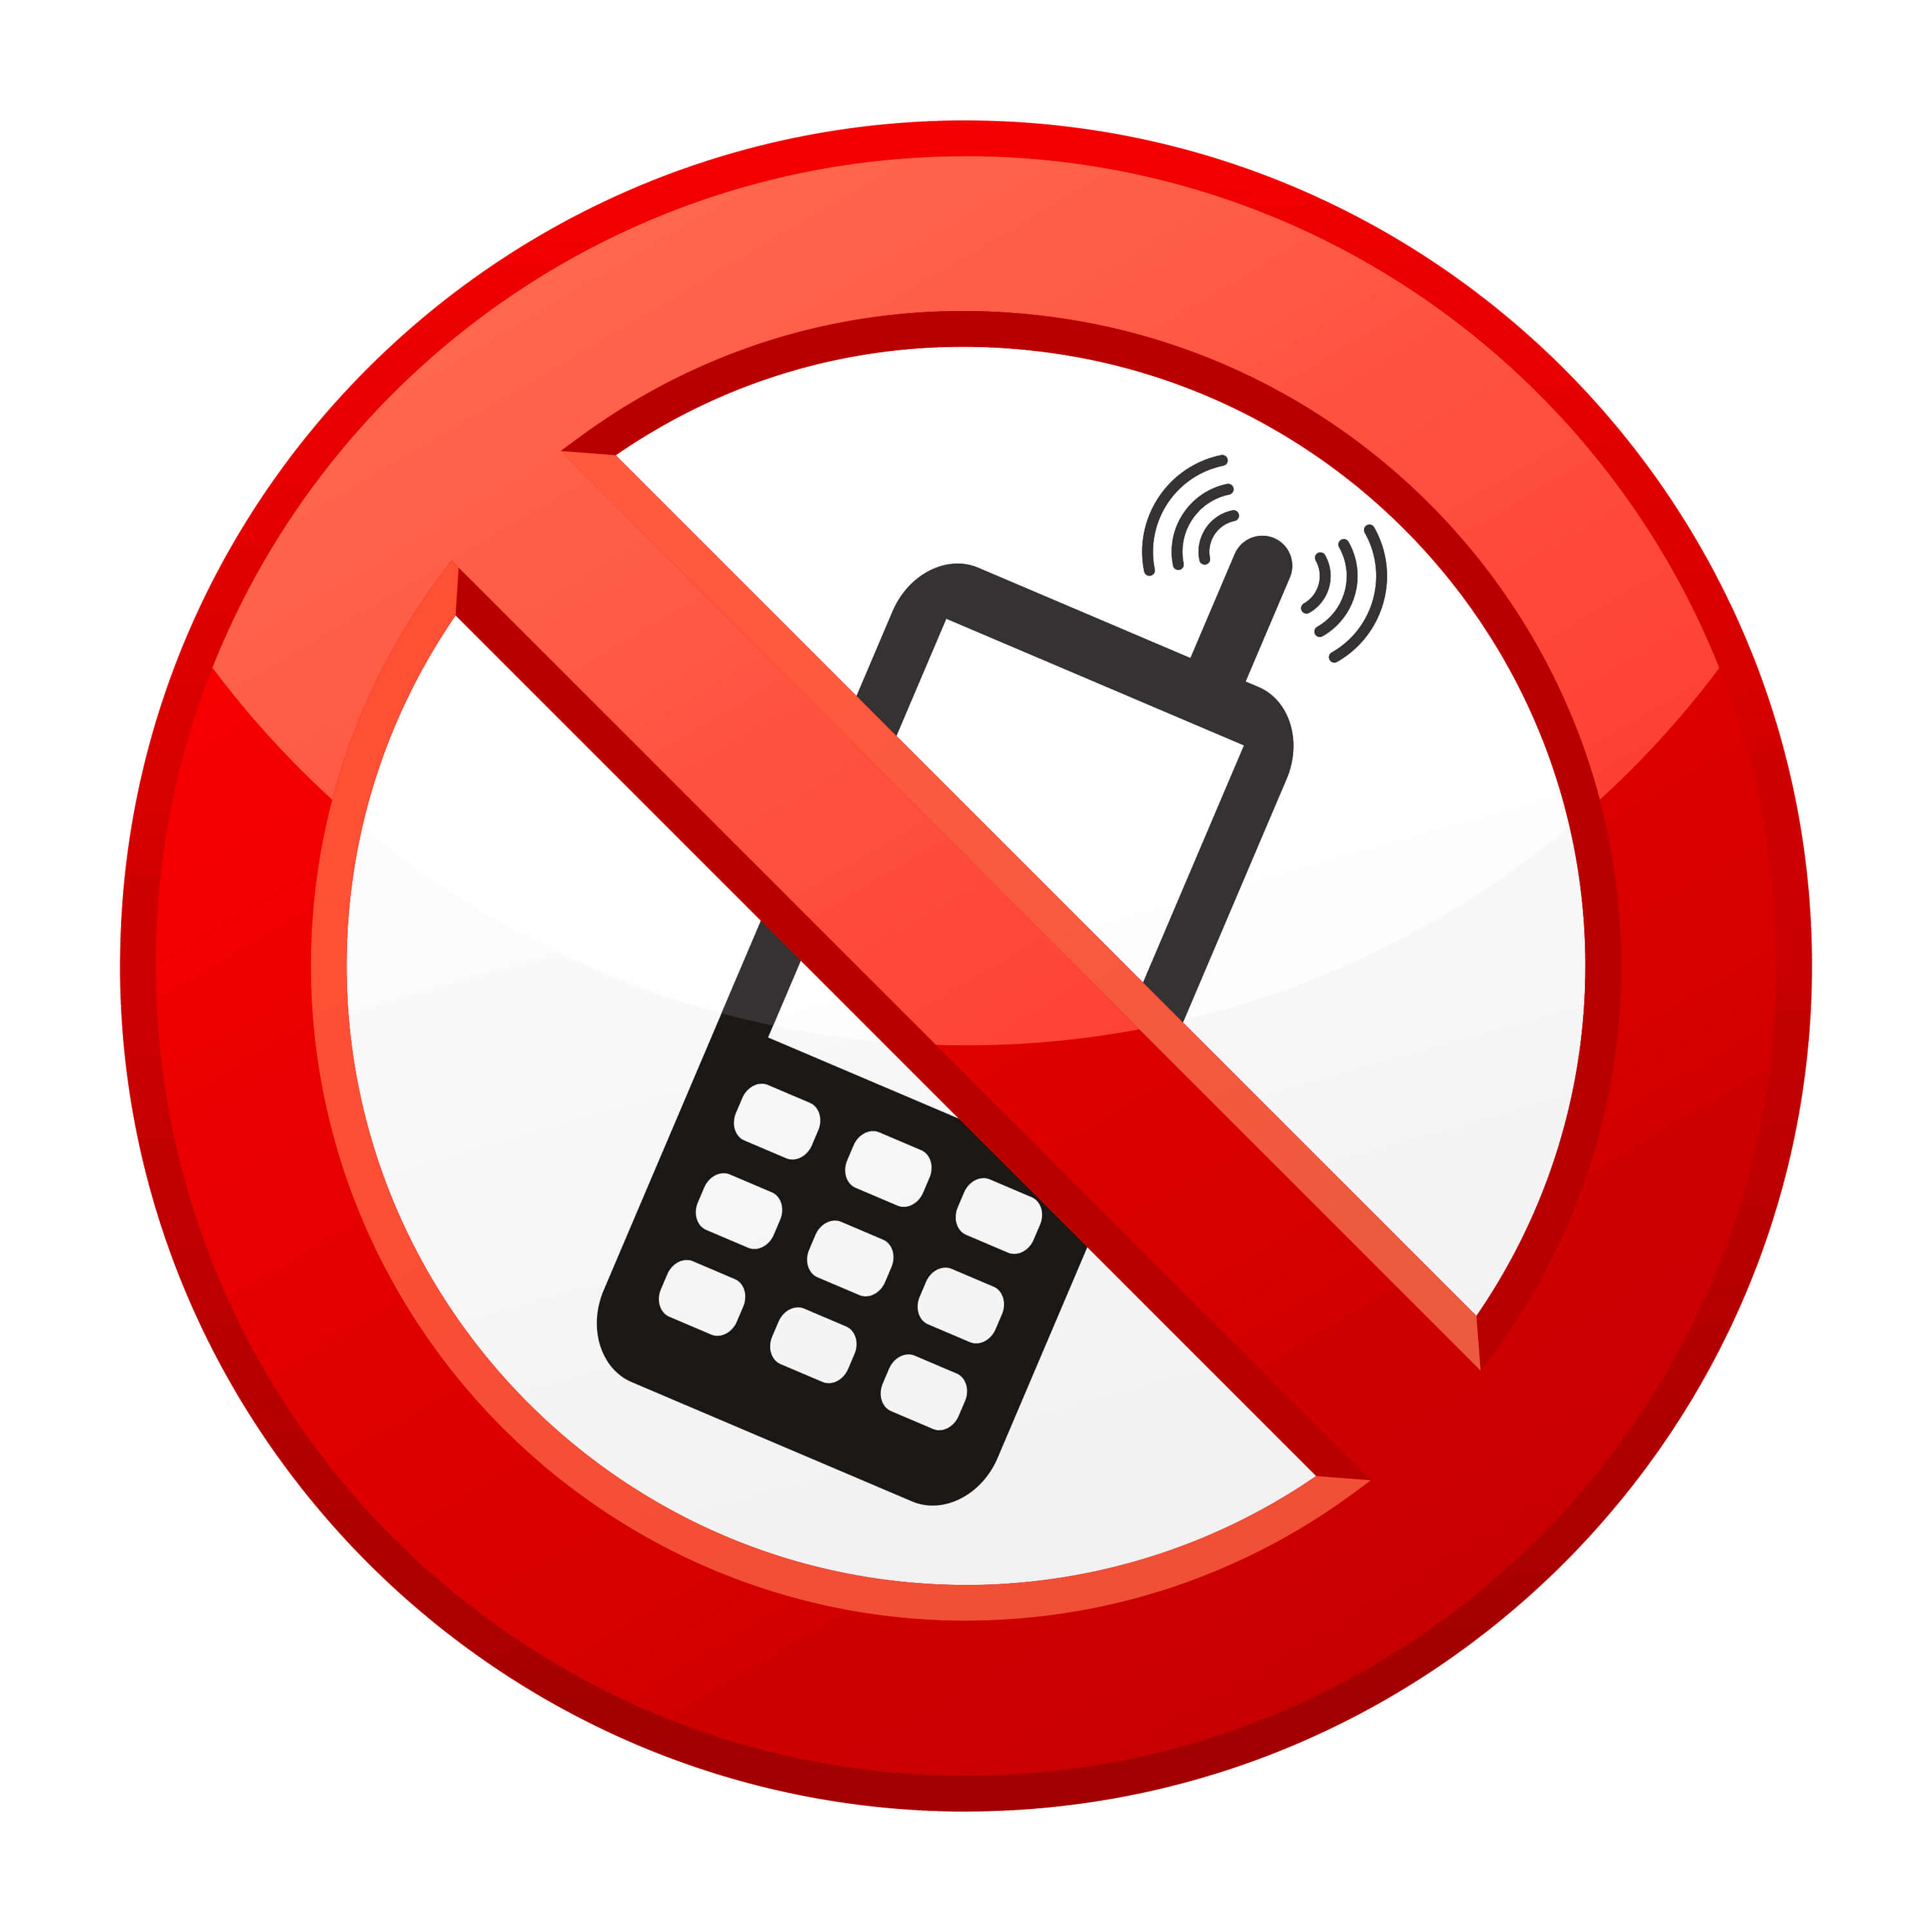 At cell phone - call block on cell phone